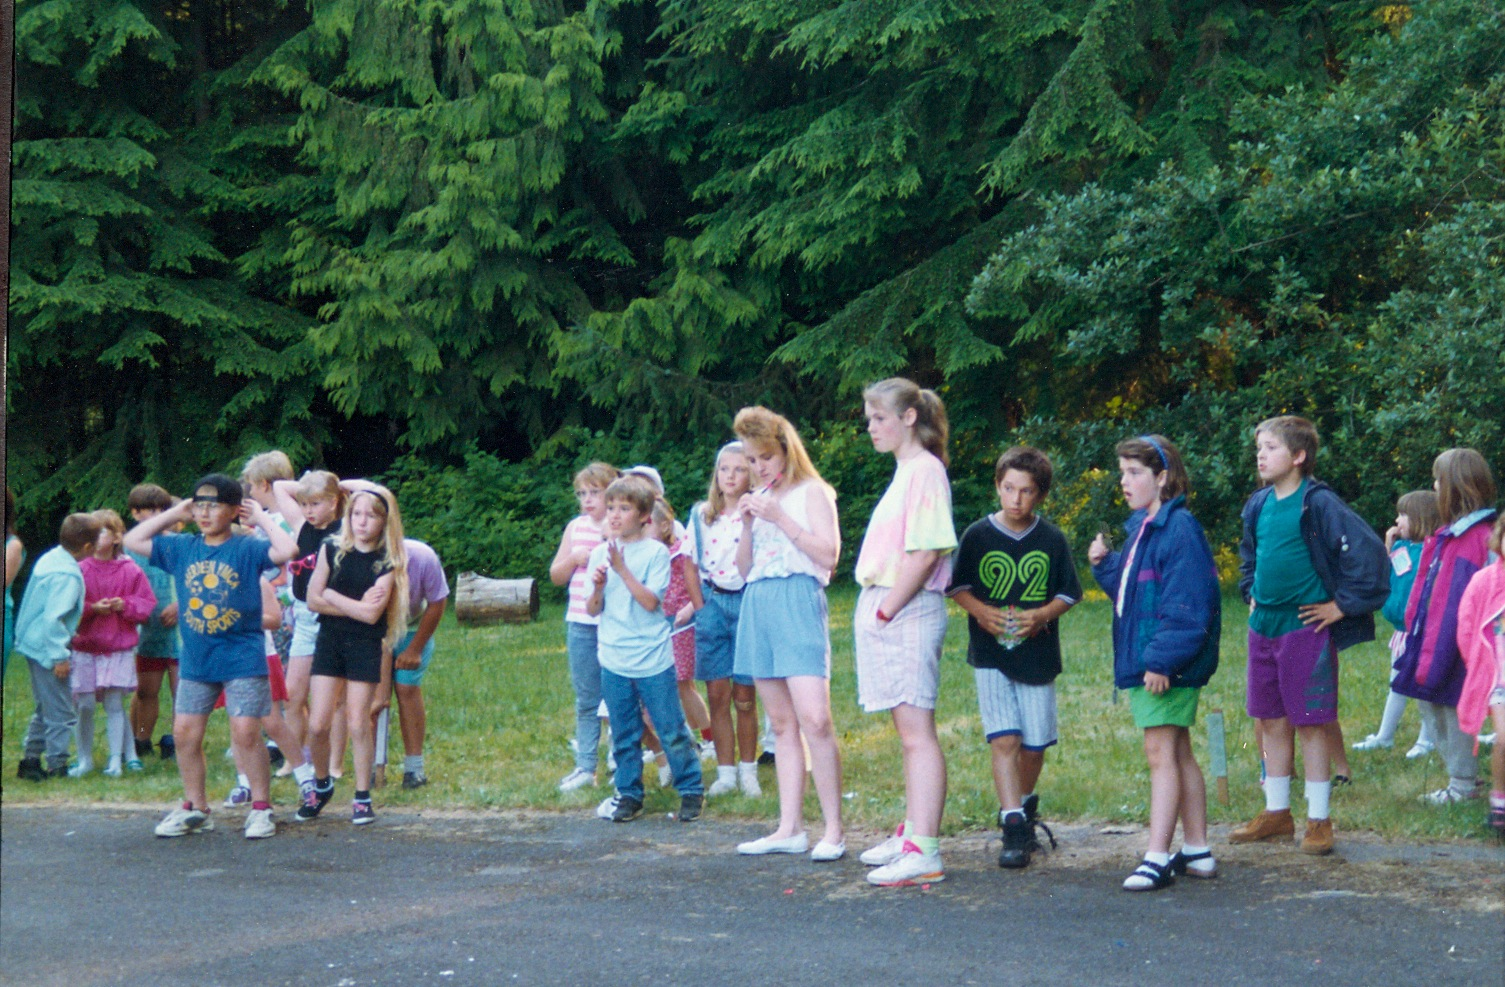 Scanned Image 121710002